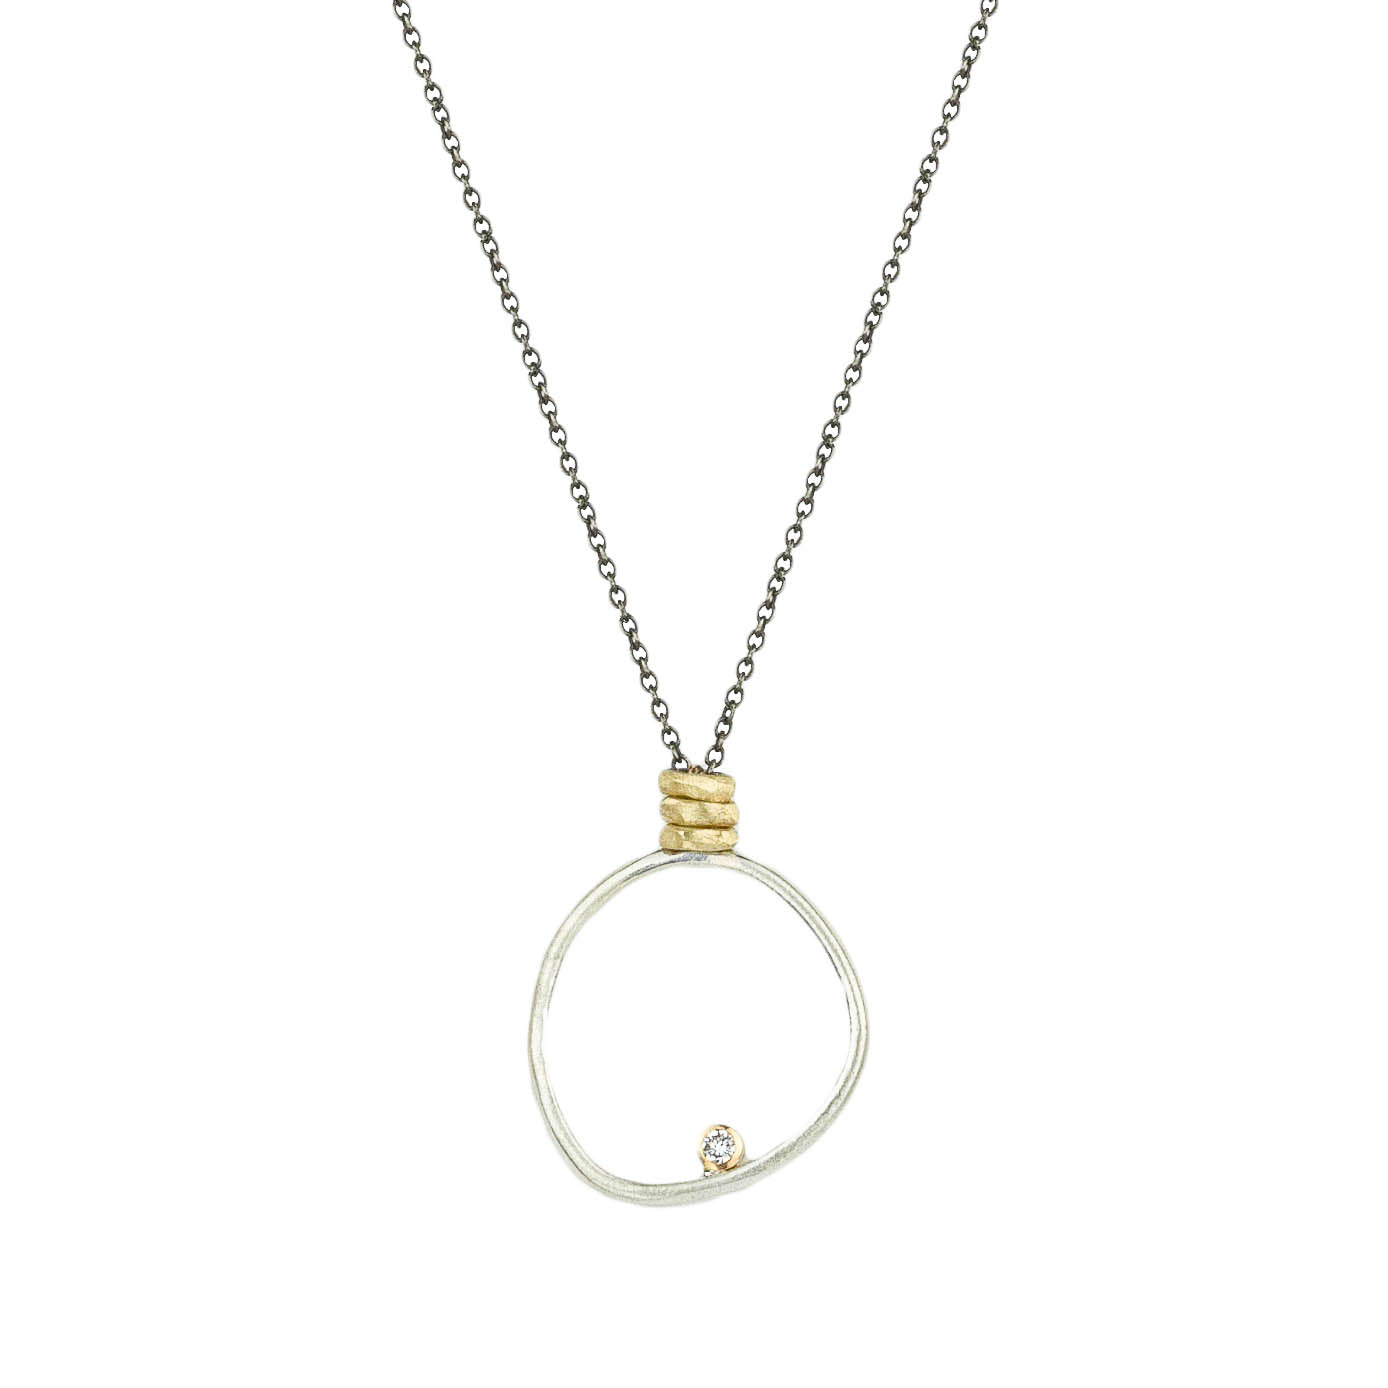 Medium Halo Necklace